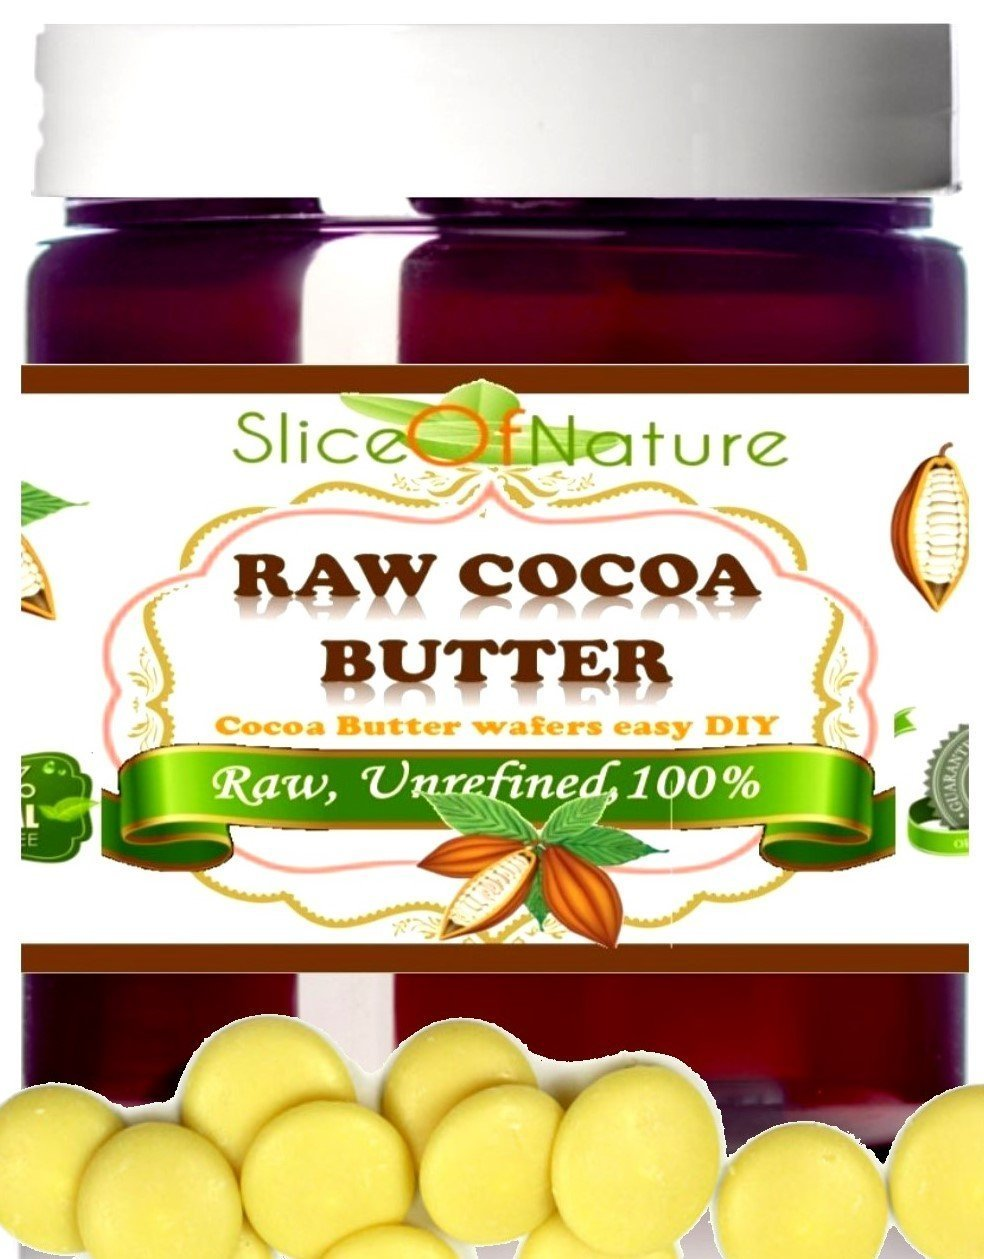 Slice of Nature RAW COCOA BUTTER - Use for Stretch Marks, Sunburn and Acne Scar Removal - Perfect Sealant - Natural Anti Wrinkle Cream 100% Pure Cocoa Butter - Unrefined, Natural Cocoa Butter with No Additives & No Artificial Preservatives - Vegan - Cruelty-Free - Not Tested on Animals - Ethically